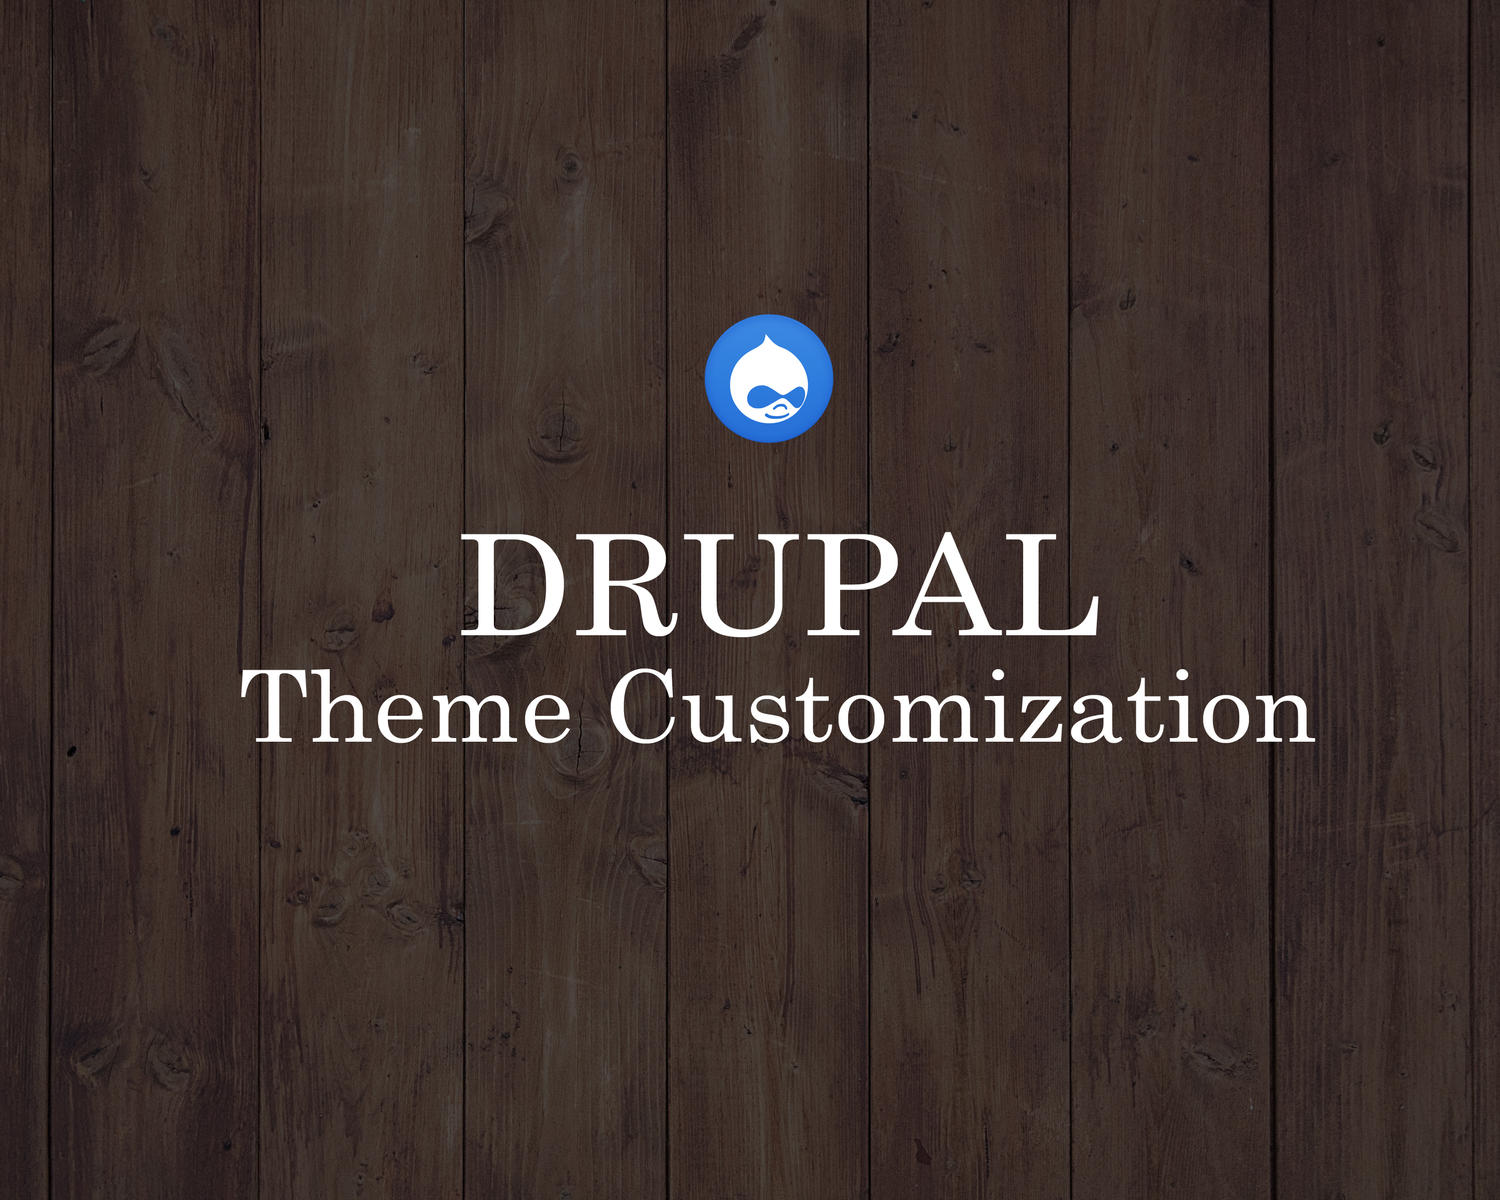 Drupal Theme Customization (Basic) by hasanet - 107580